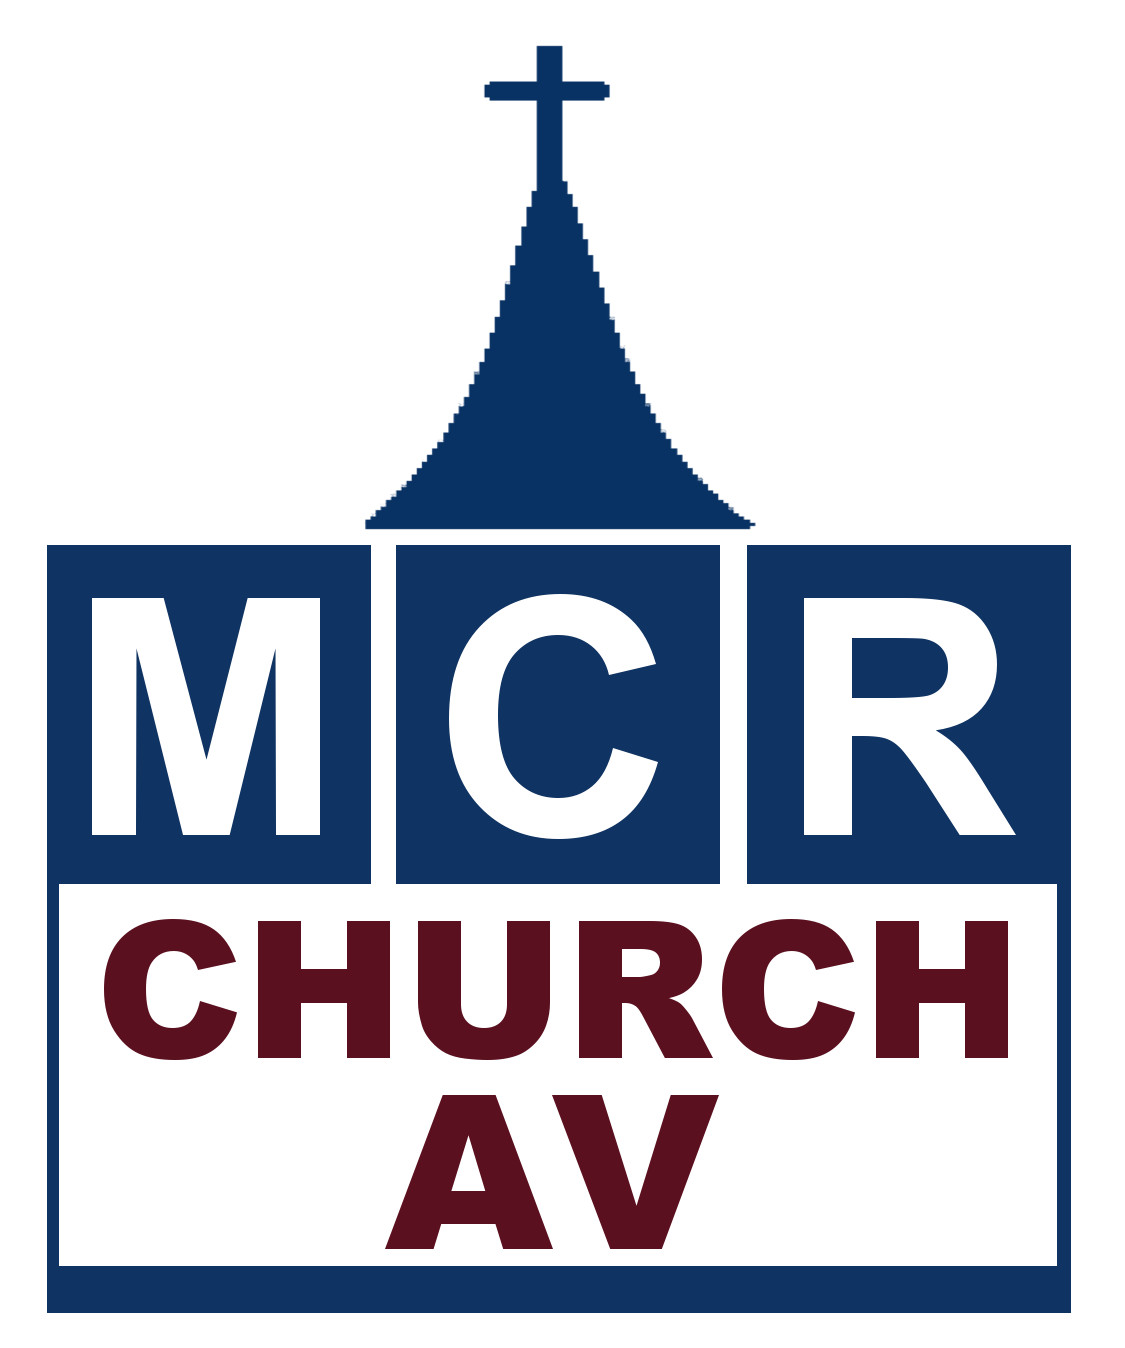 MCR CHURCH AV LOGO TEST.jpg